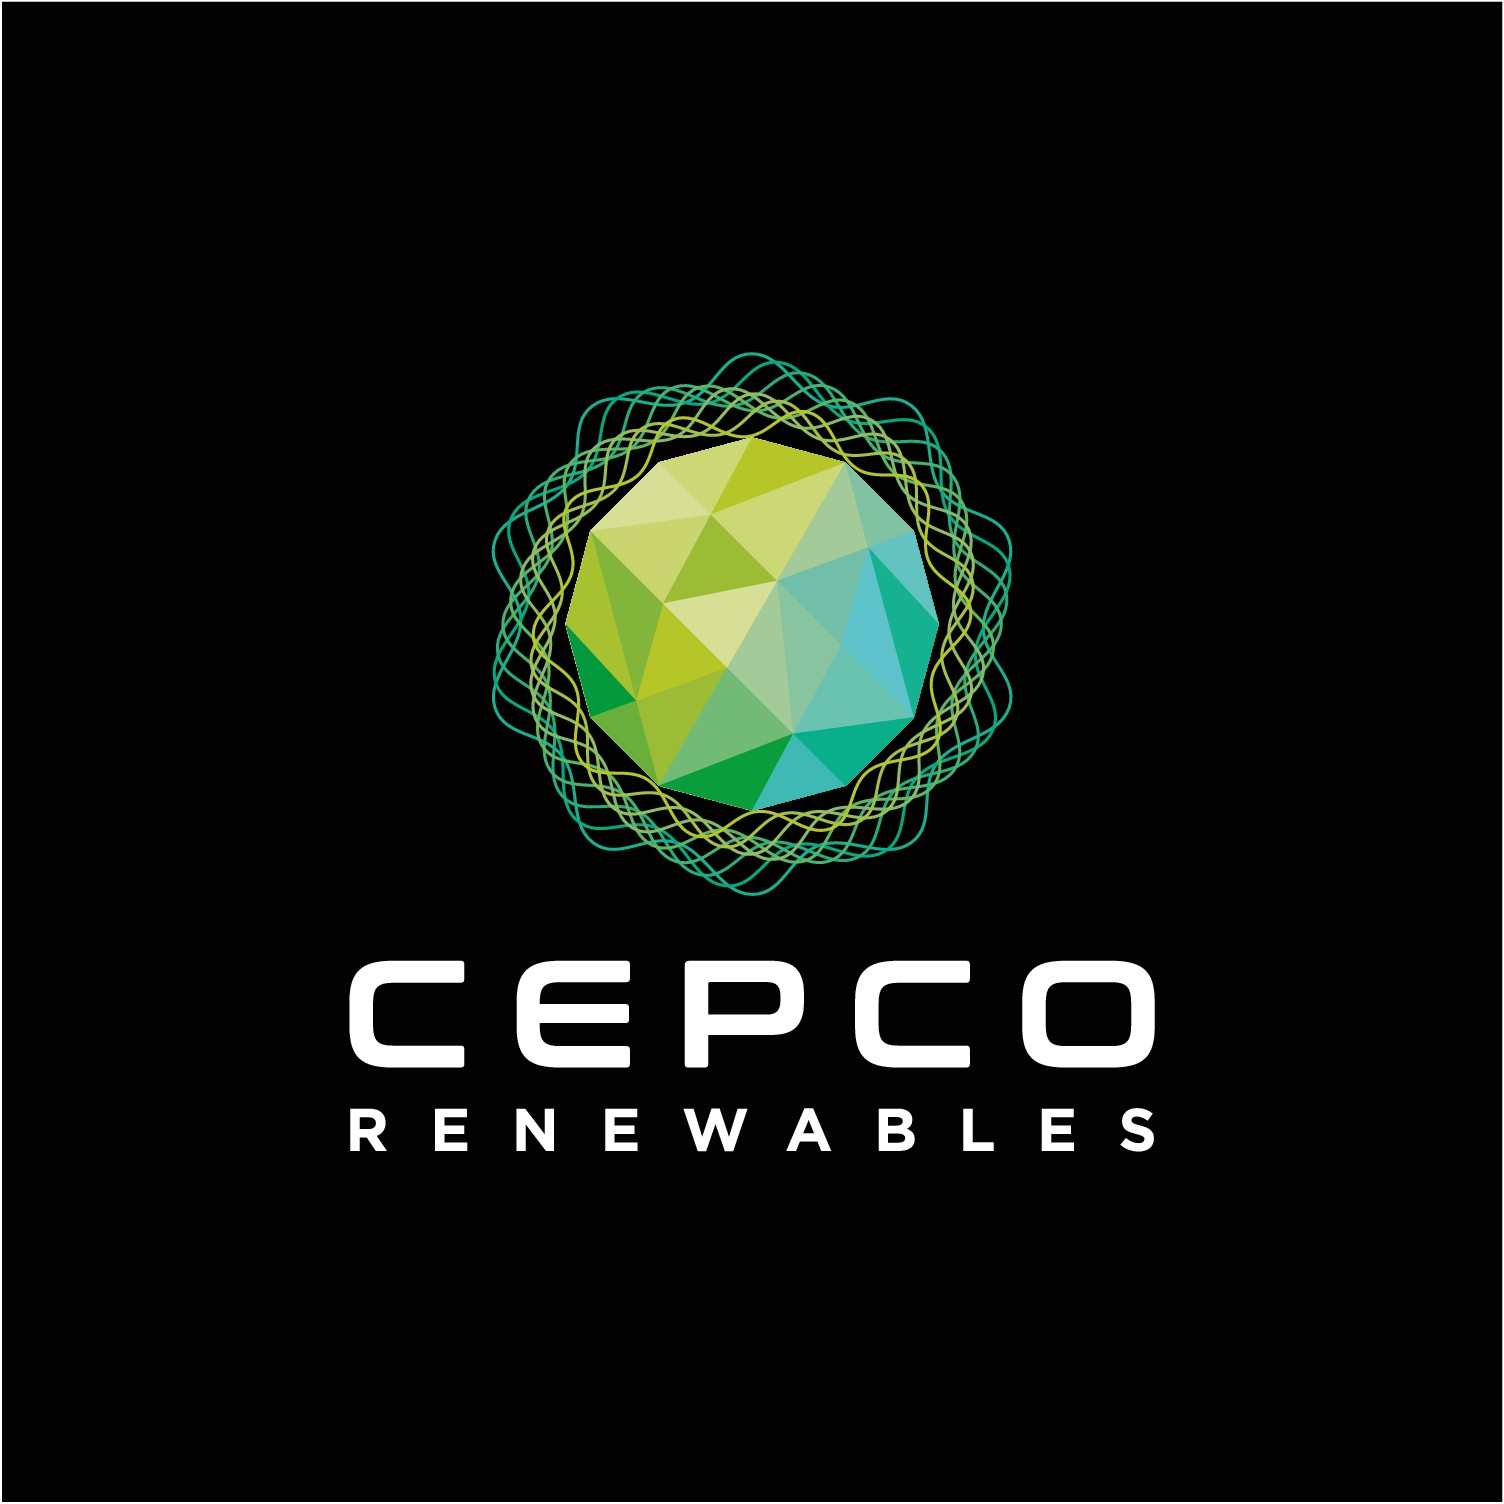 CEPCO Renewables Logo Design